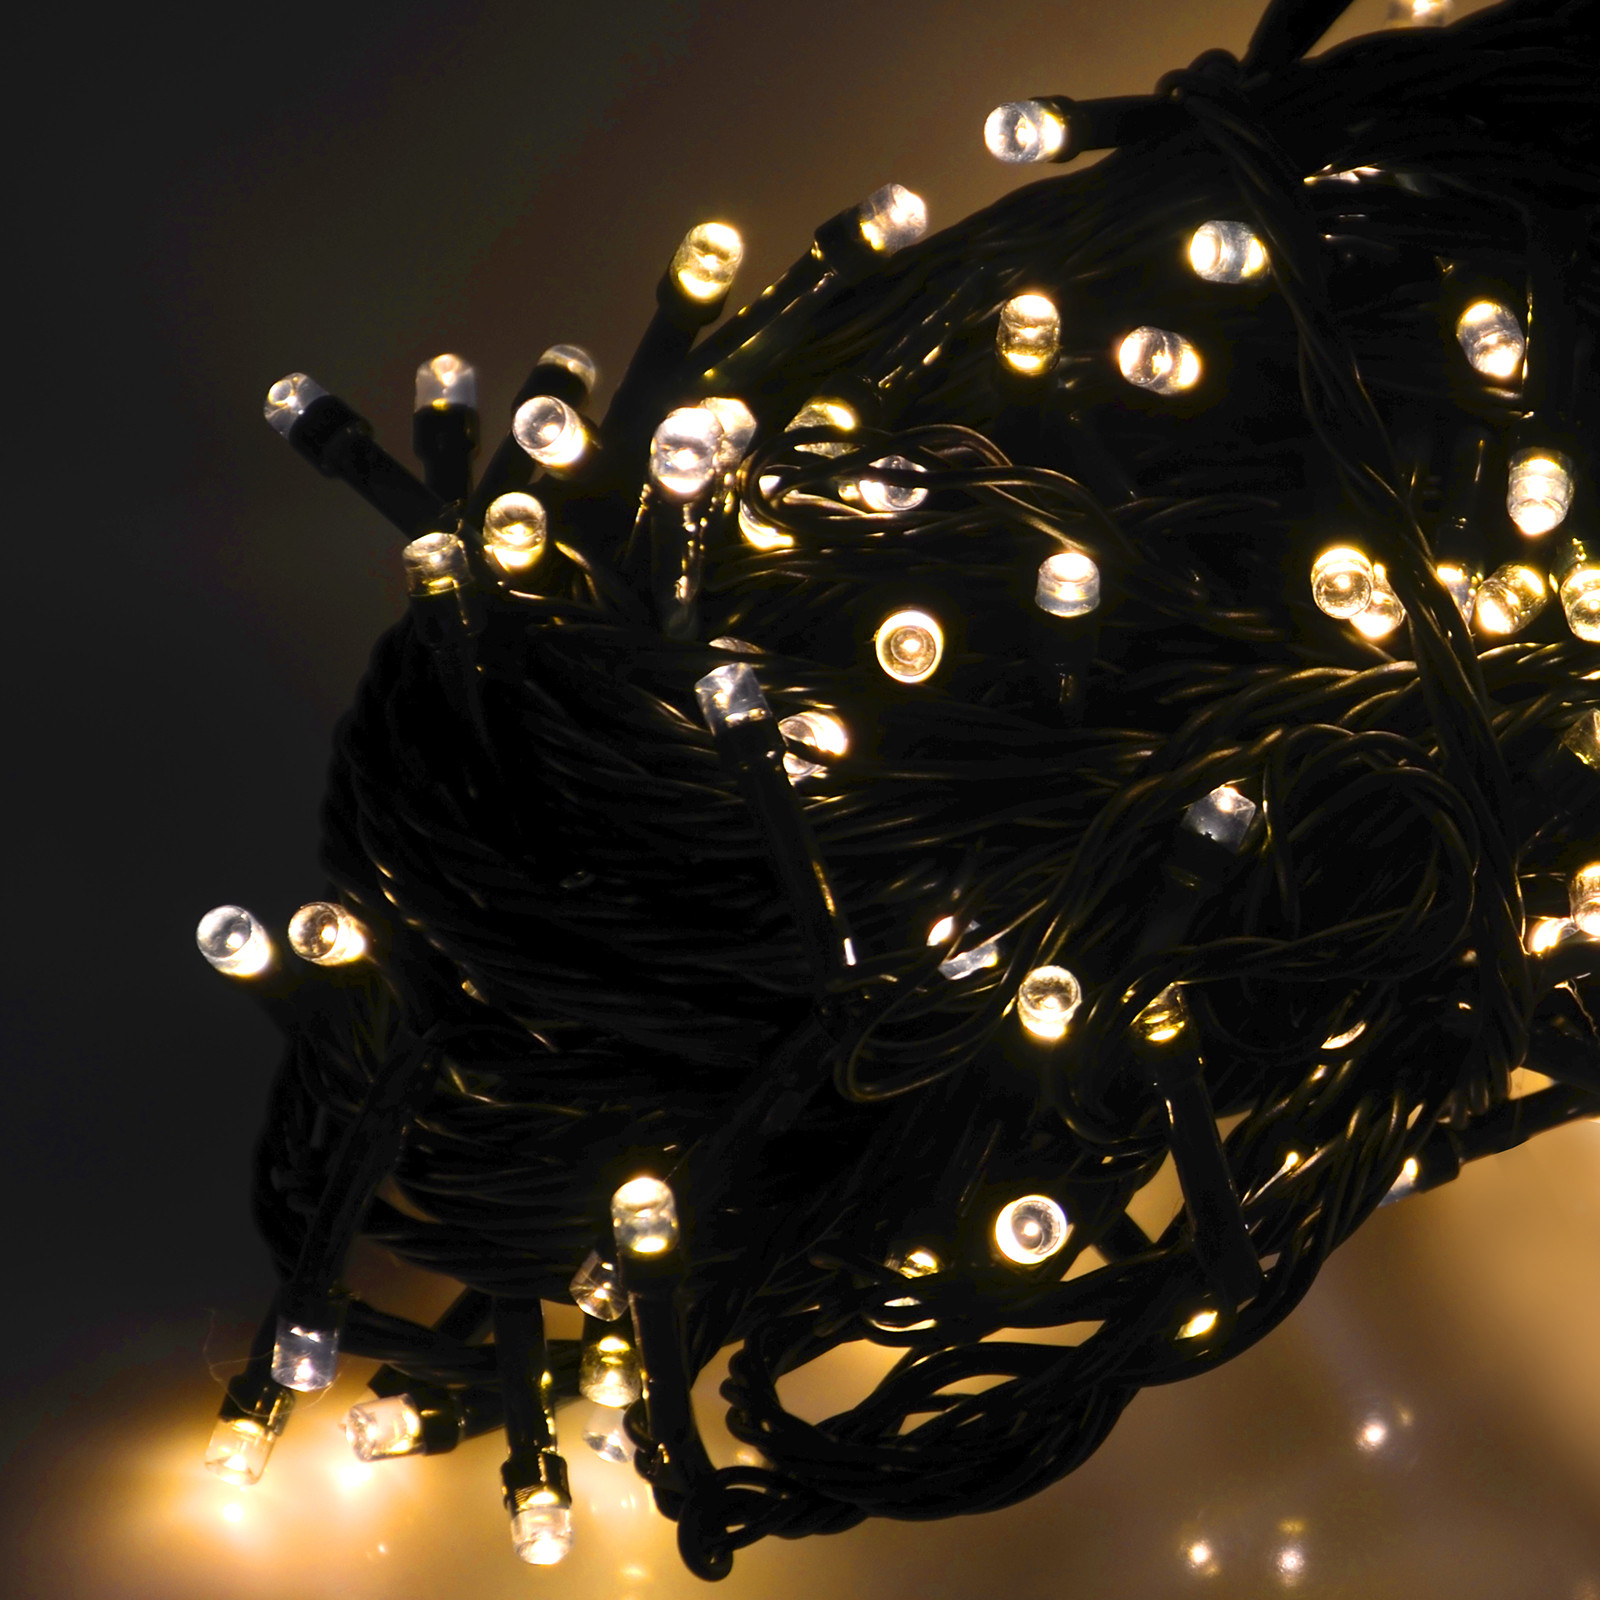 Indoor Outdoor Christmas Light  Battery Operated Chasing LED Lights String With Timer